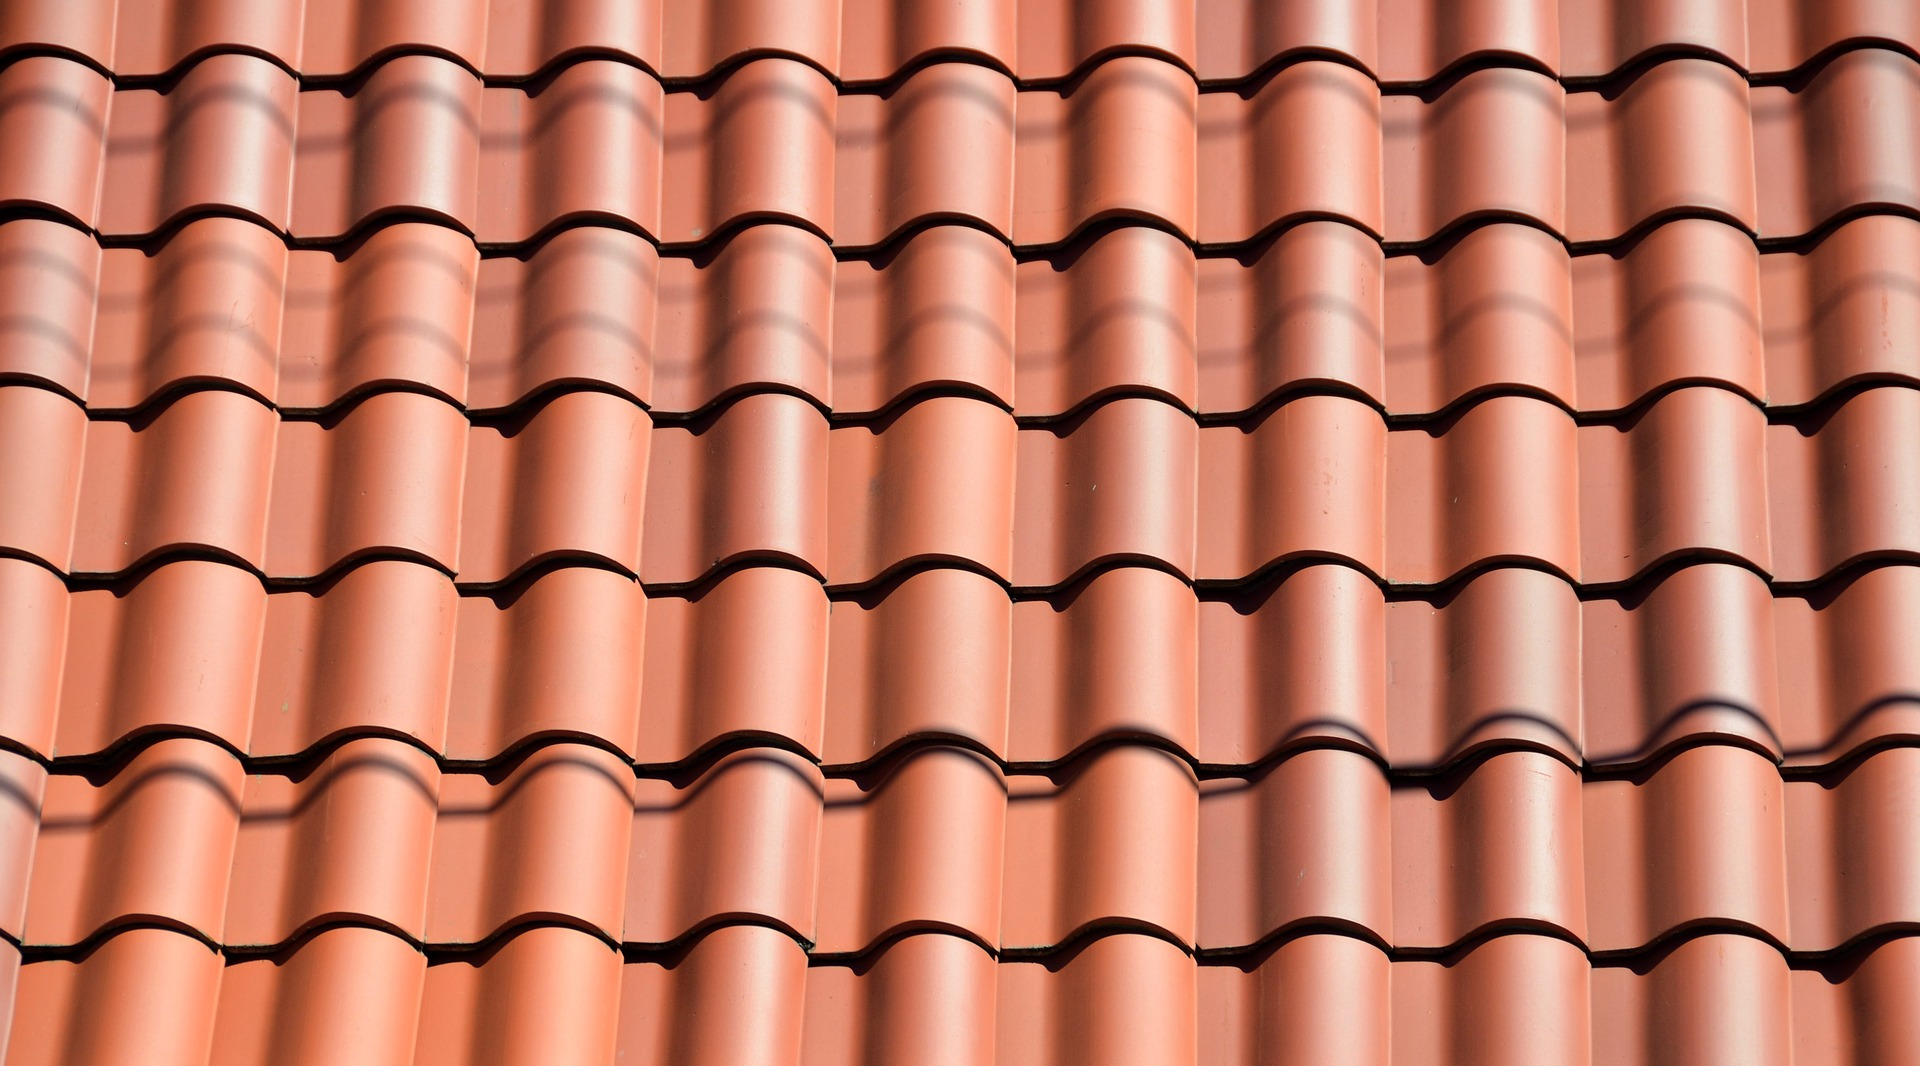 HPS roofing tiles in Lagos Nigeria